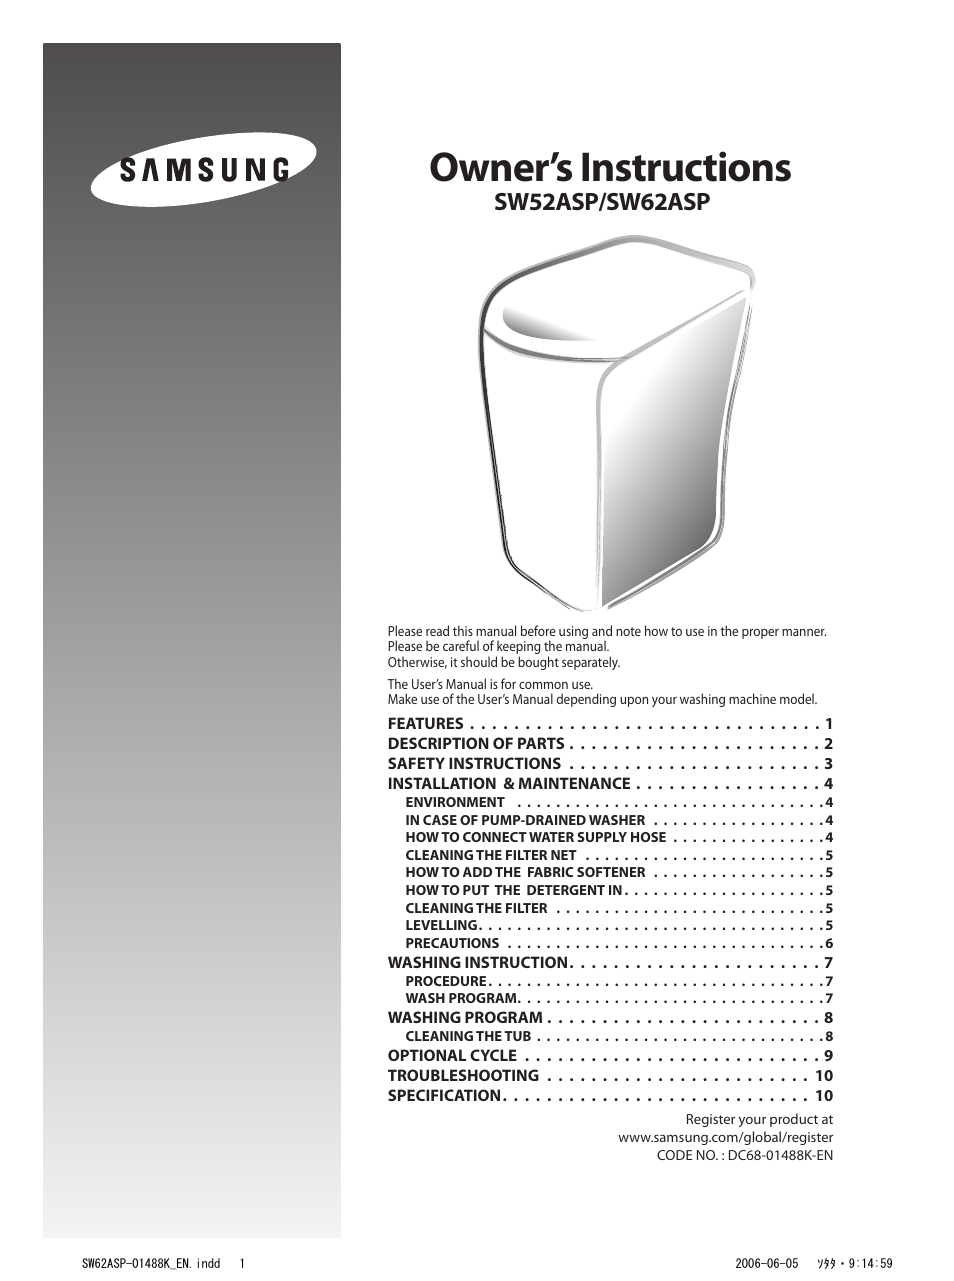 Samsung Sw52asp User Manual 12 Pages Also For Sw62asp